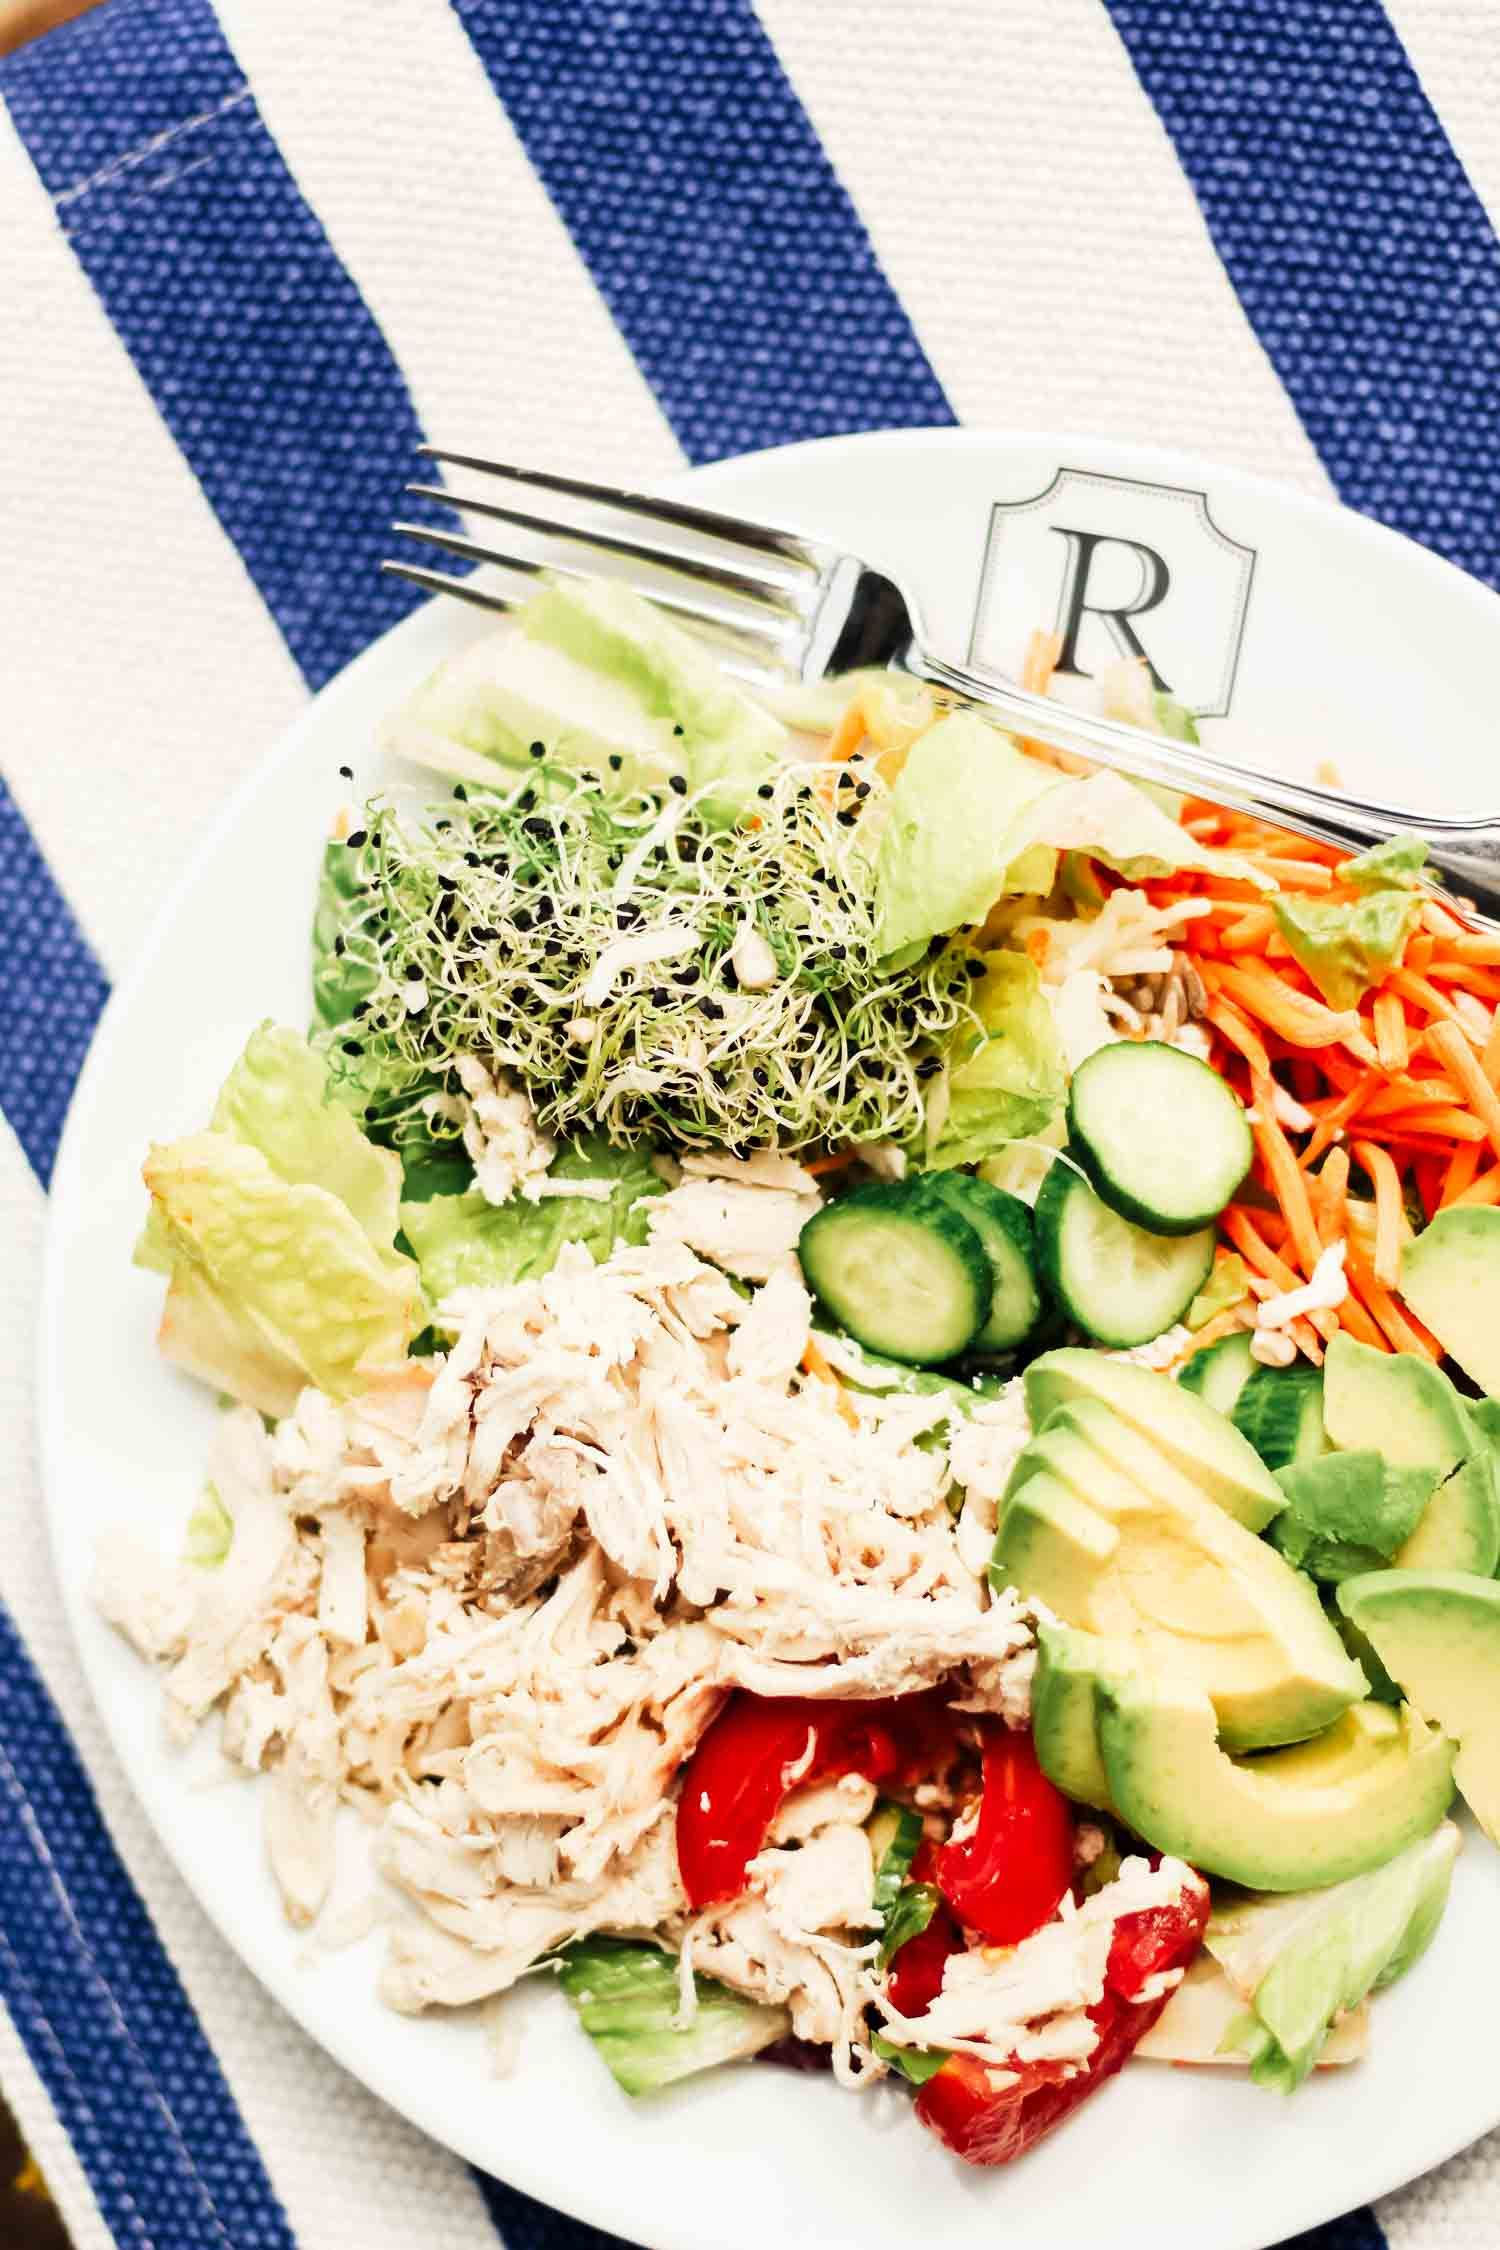 The salad the Kardashians are always eating! This recipe is inspired by the same cafe Kourtney, Kim, Khloe, Kendall and Kylie eat at 4 times a week!